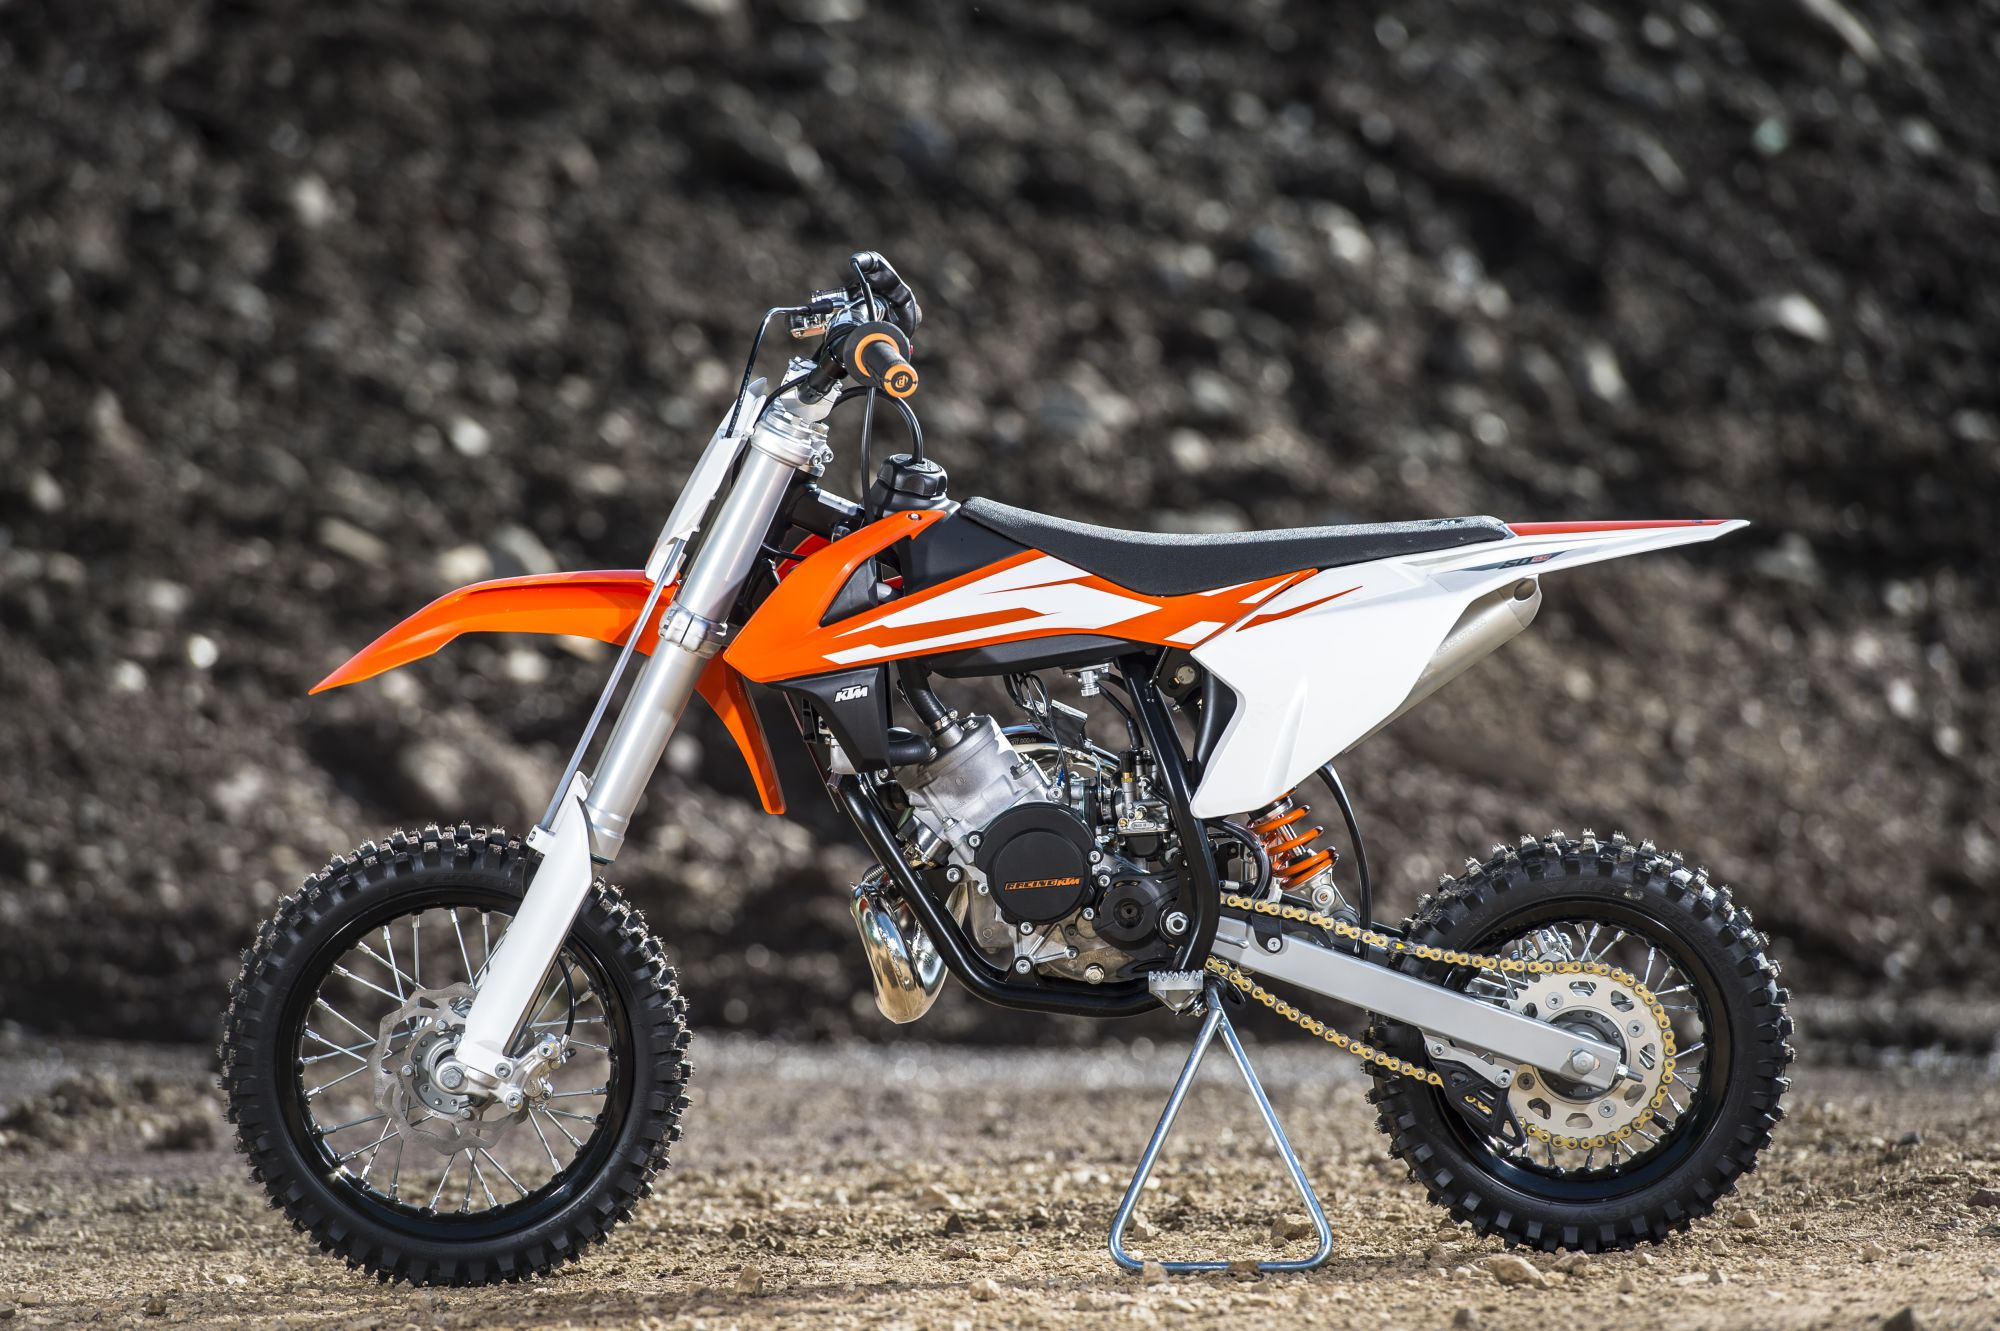 Stater For A Ktm Sx